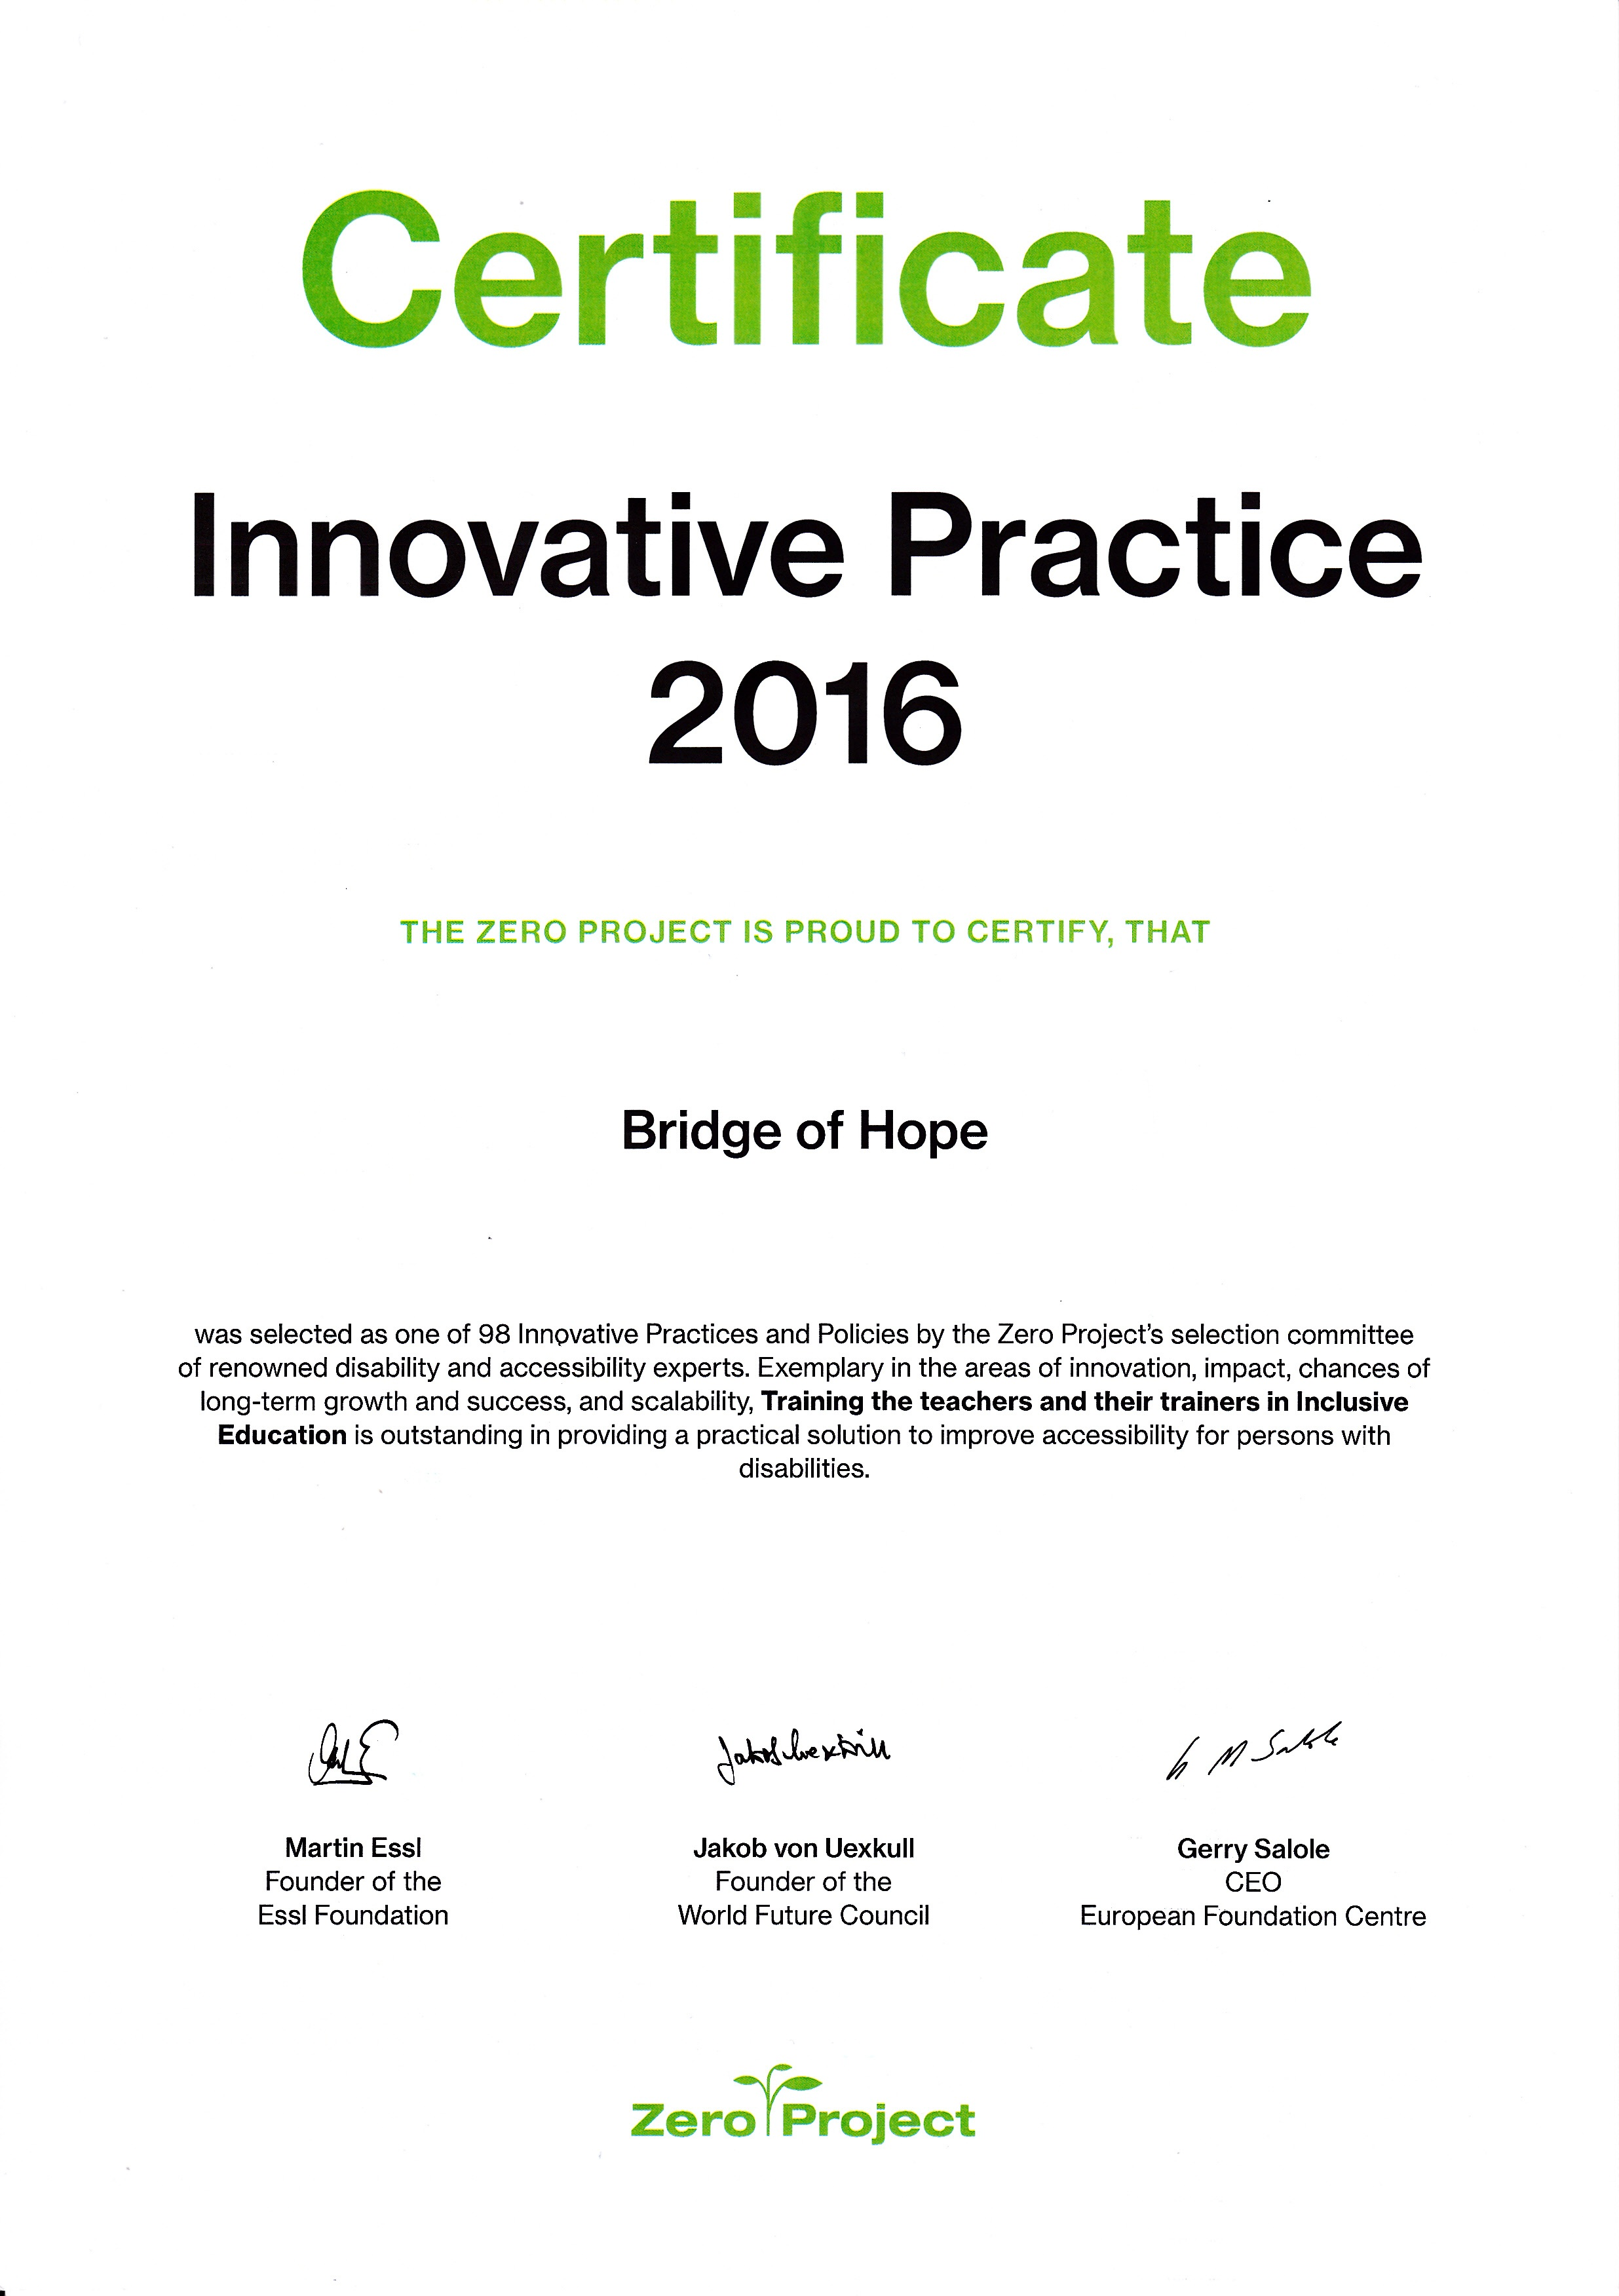 Zero Project Prize | Innovative Practice 2016